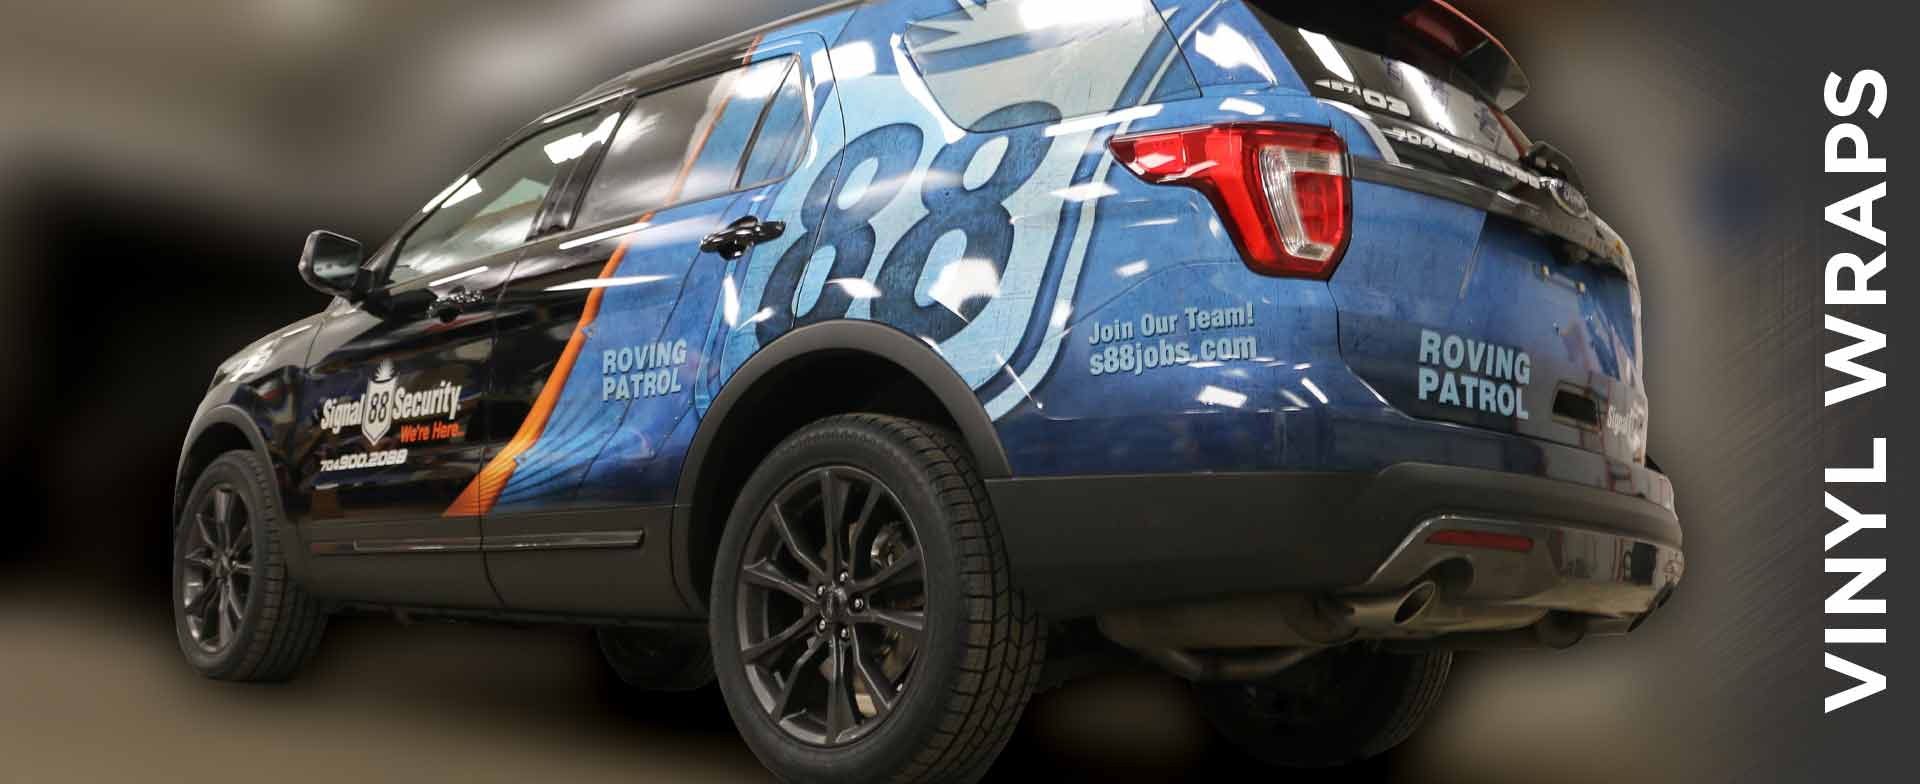 Police and Security Patrol Vehicle Wraps